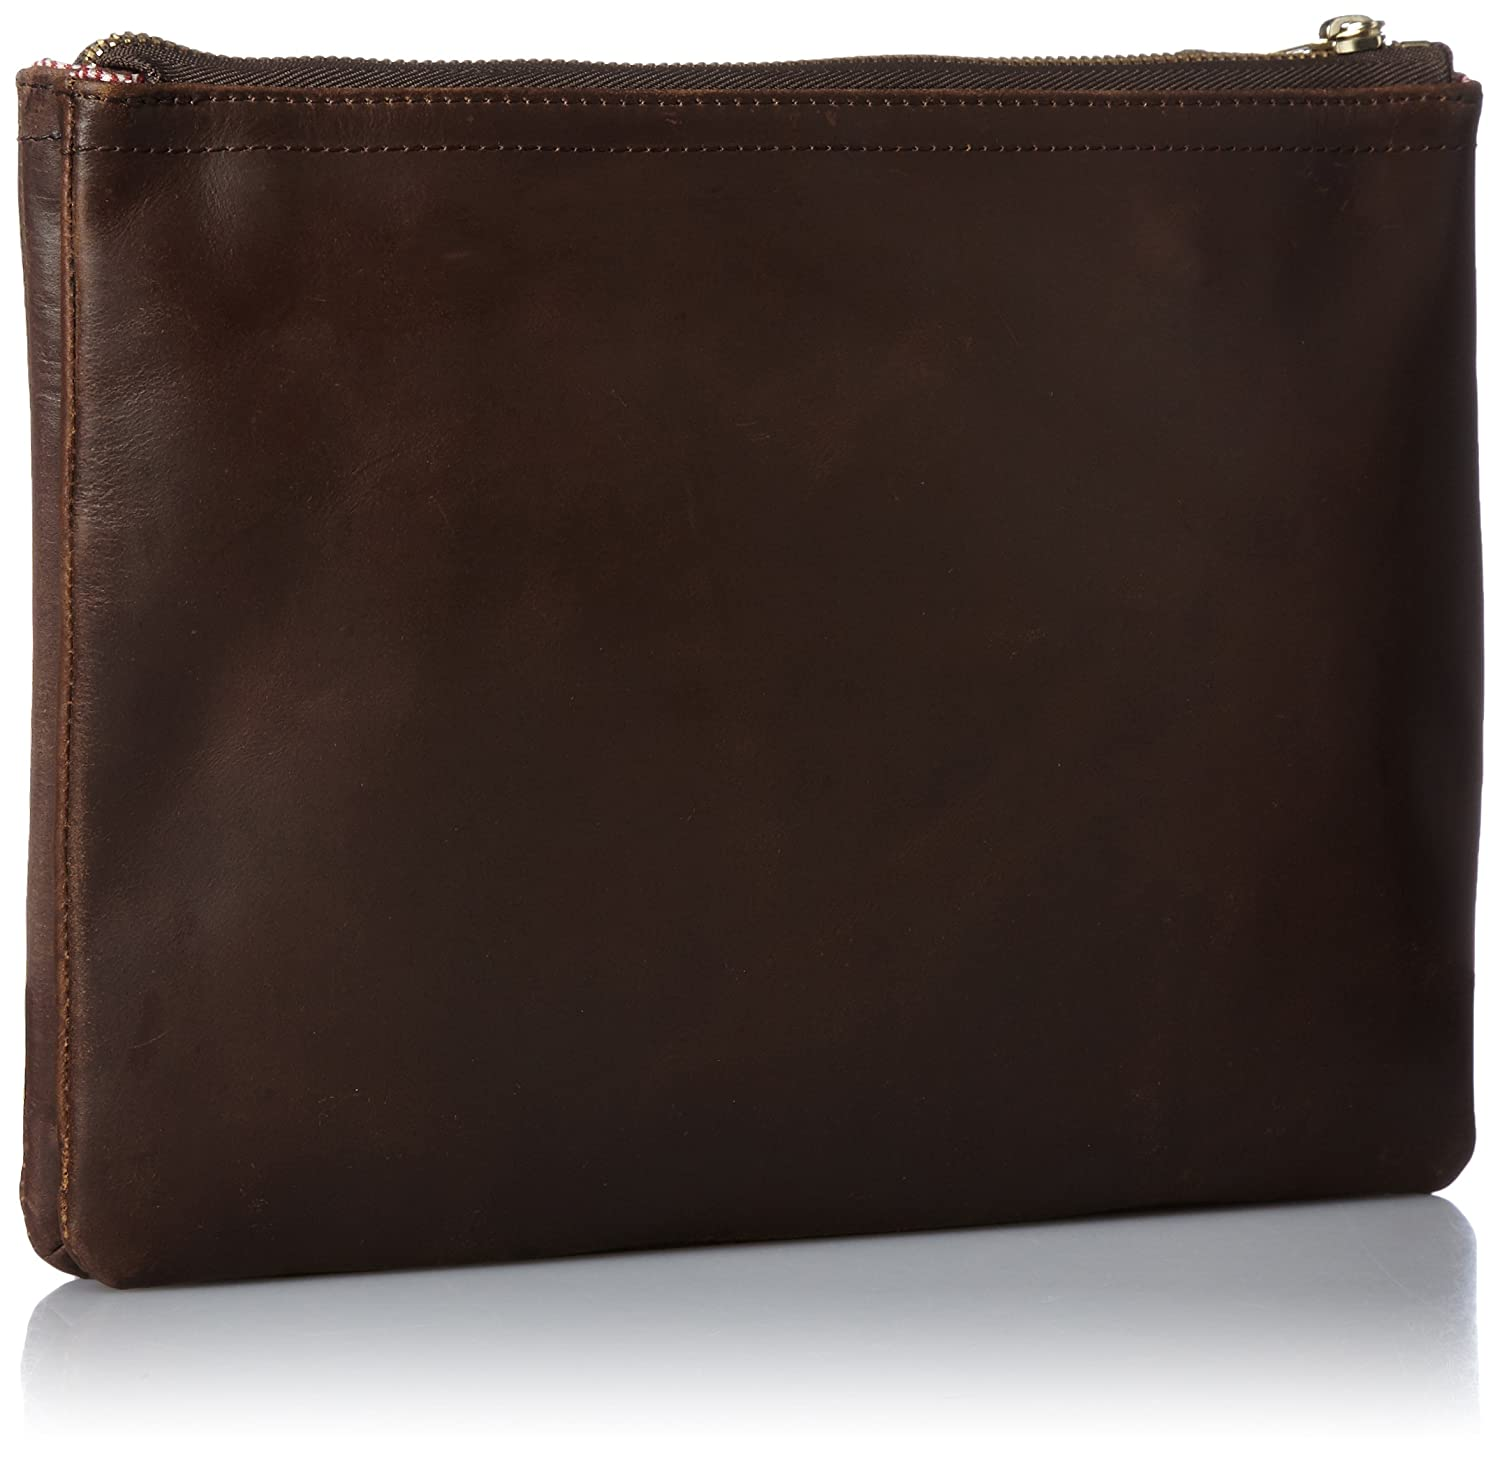 Herschel Supply Co Casey Xl Leather Pouch